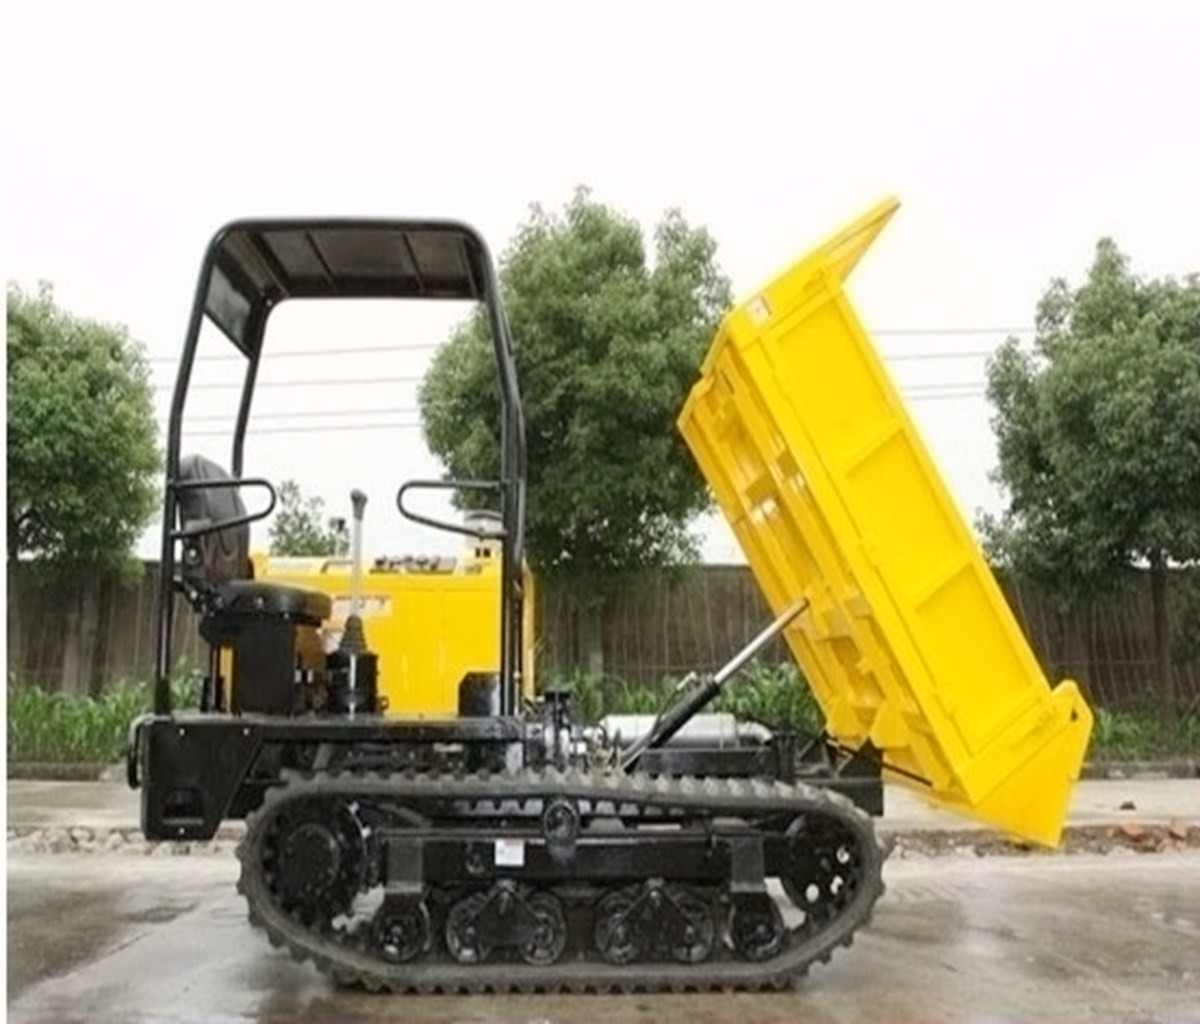 Sales Palm Full Rubber Crawler Dumper, Buy Palm Full Rubber Crawler Dumper, Palm Full Rubber Crawler Dumper Factory, Palm Full Rubber Crawler Dumper Brands